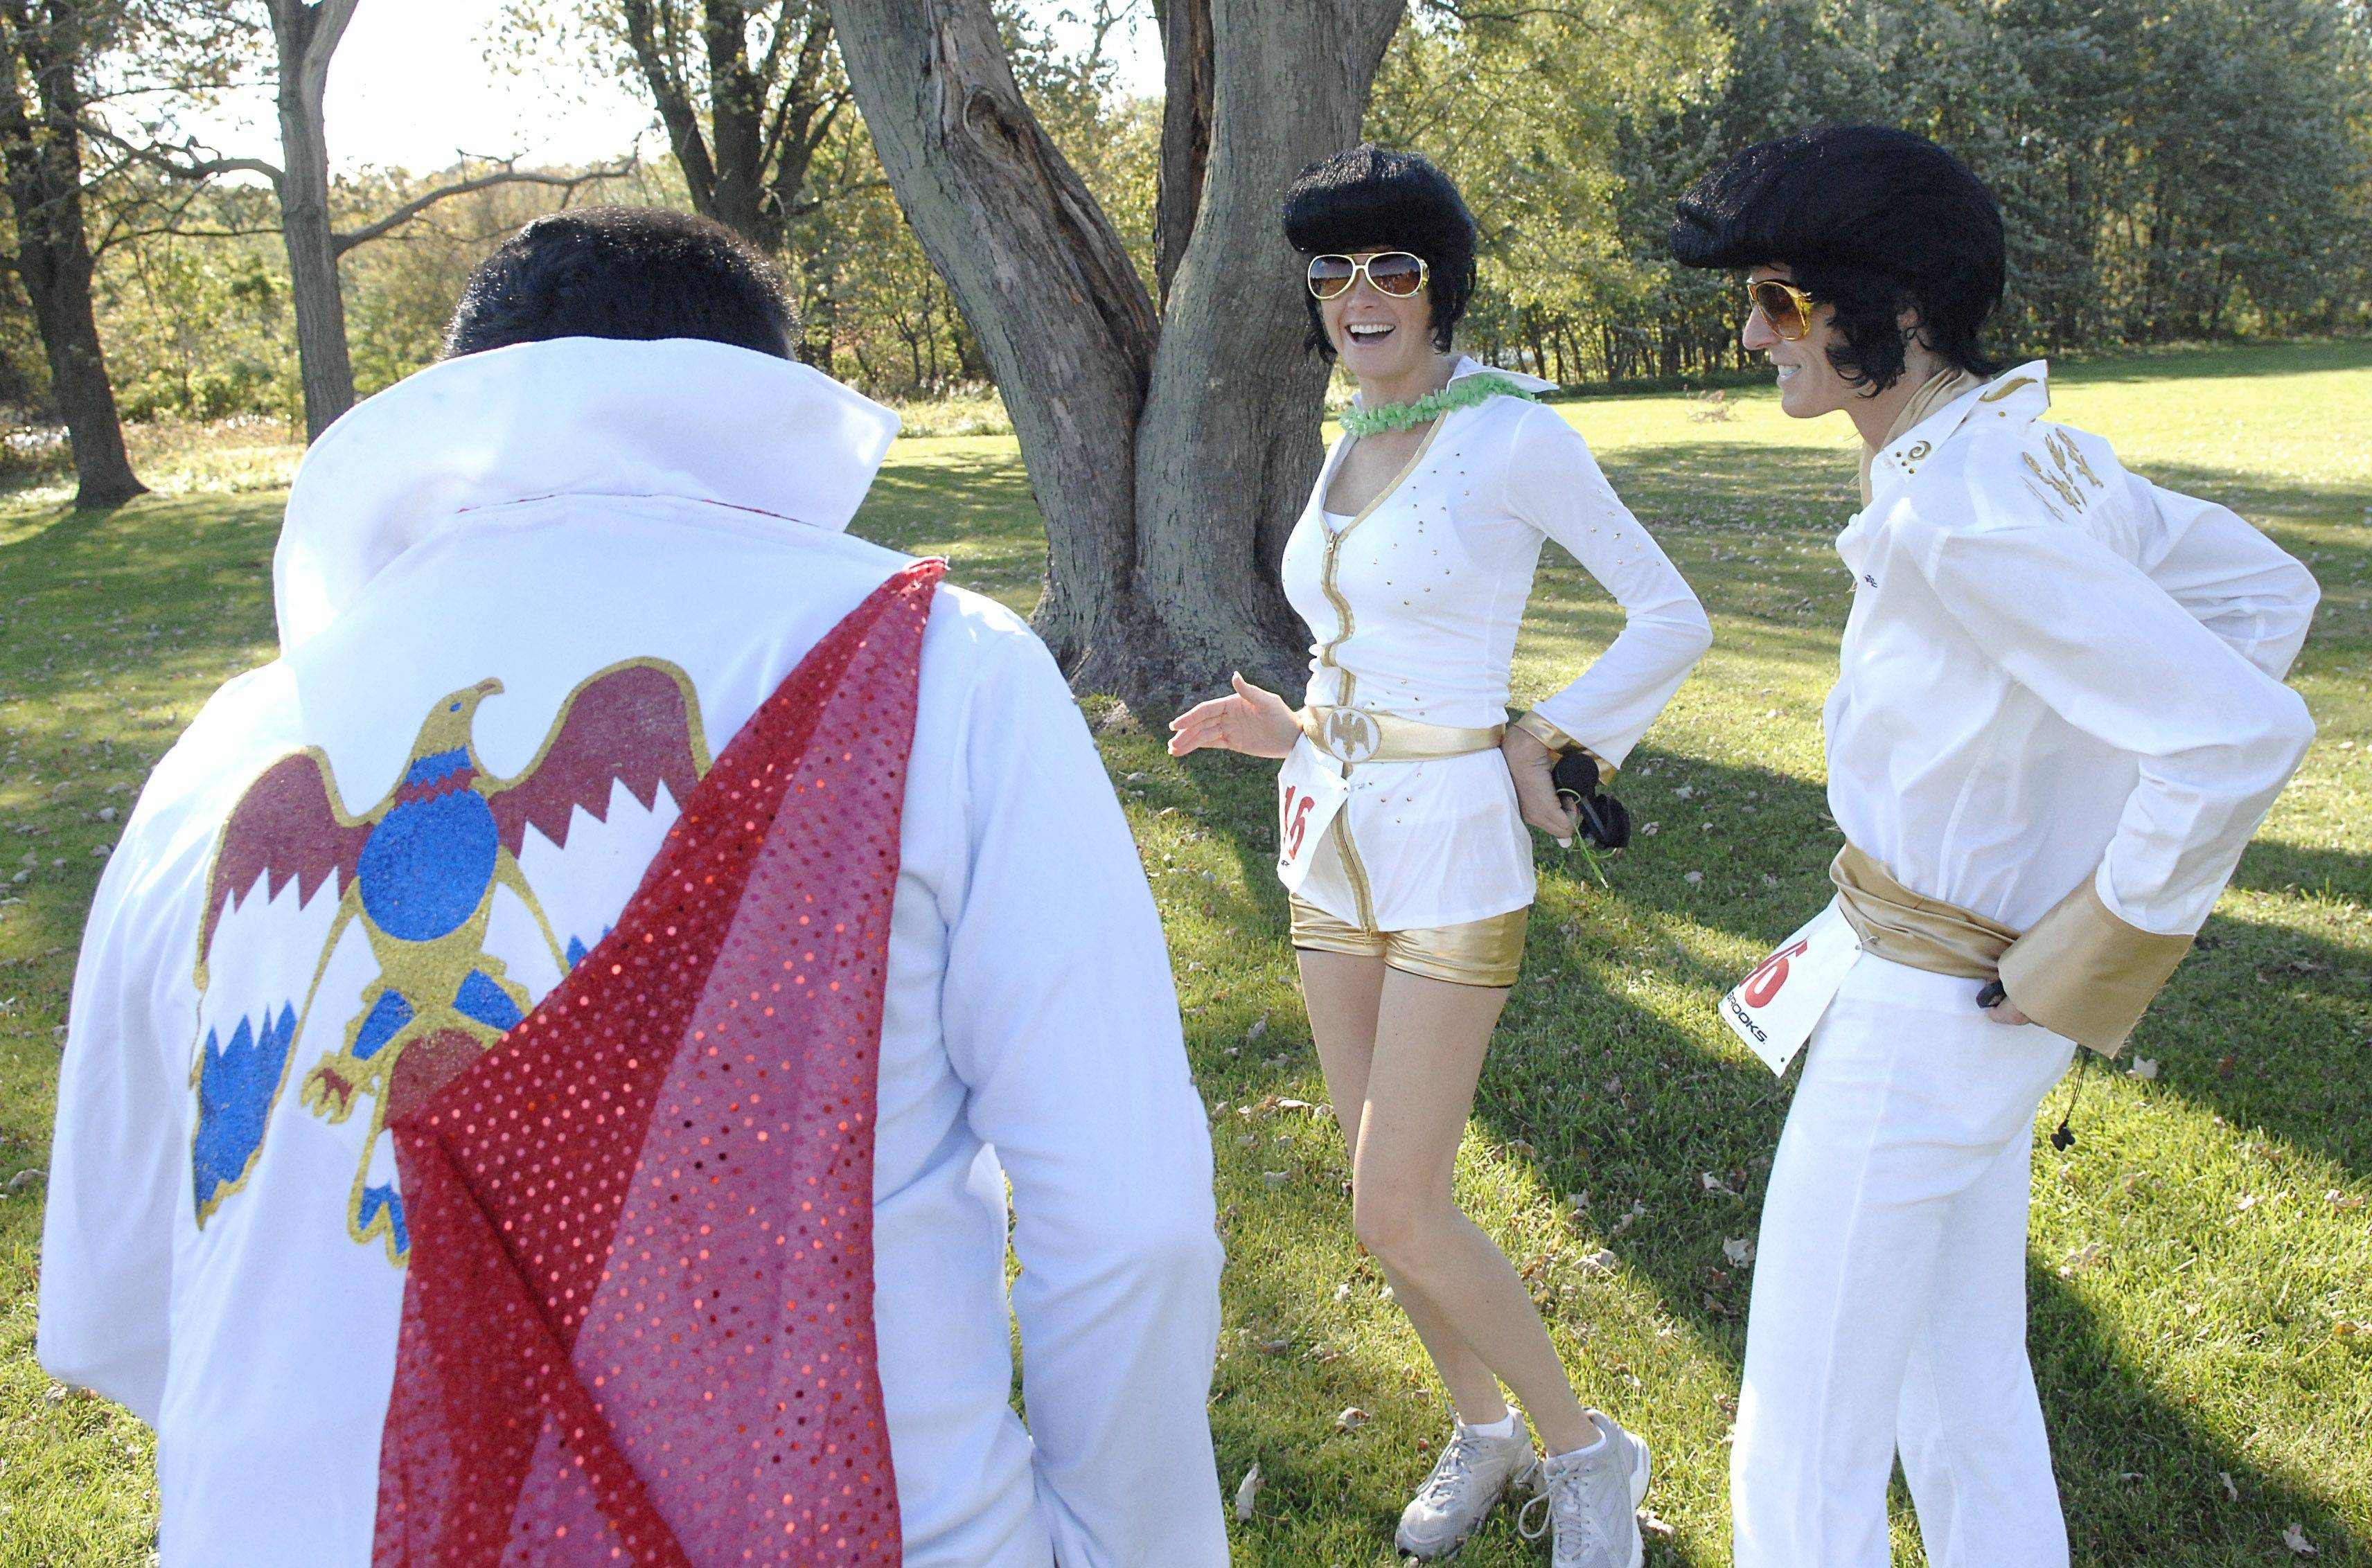 Elvis impersonators congregate near the starting line of the Geneva Academic Foundation's Viva Geneva! 5K run and youth mile at the Kane County Government Center on Saturday, October 2. Left to right are Willy Medina, race organizer, Jennifer Everhardus of Wilmette, and Aimee Vallero of Geneva.